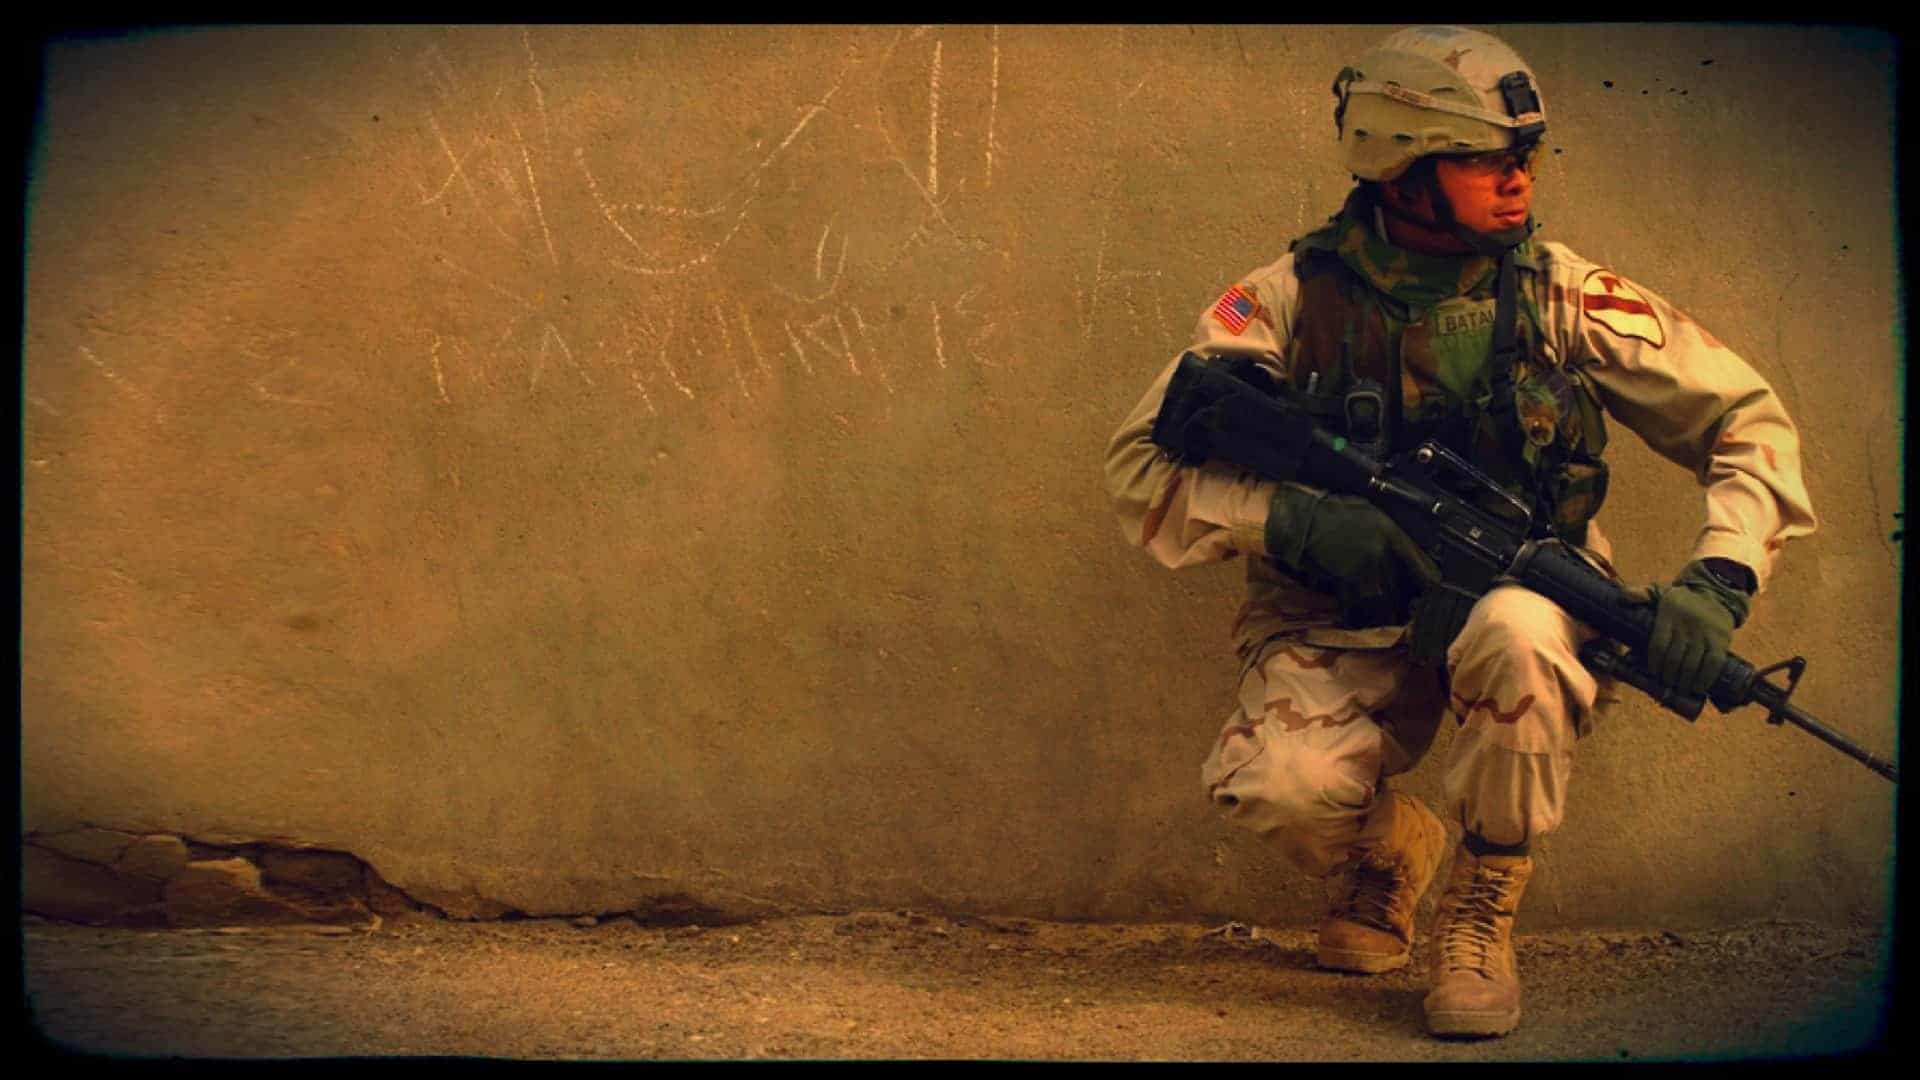 Alex Contreras, Army Sergeant and vegan, is shown in full combat gear, hunkered down against a wall. He has his weapon at the ready across his thigh.